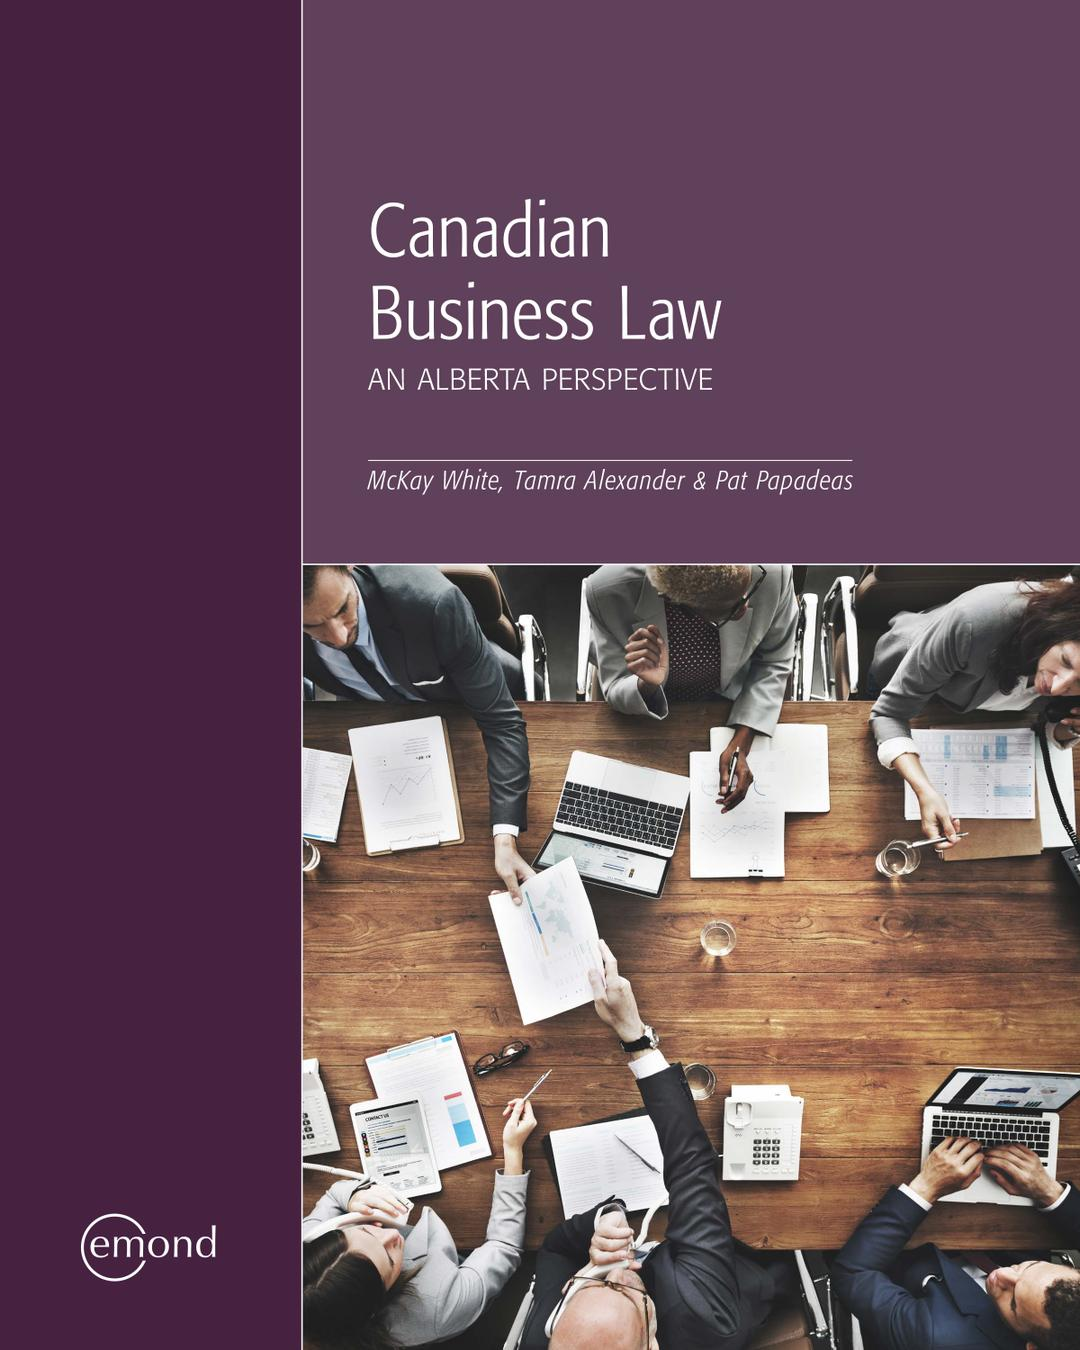 Canadian Business Law: An Alberta Perspective